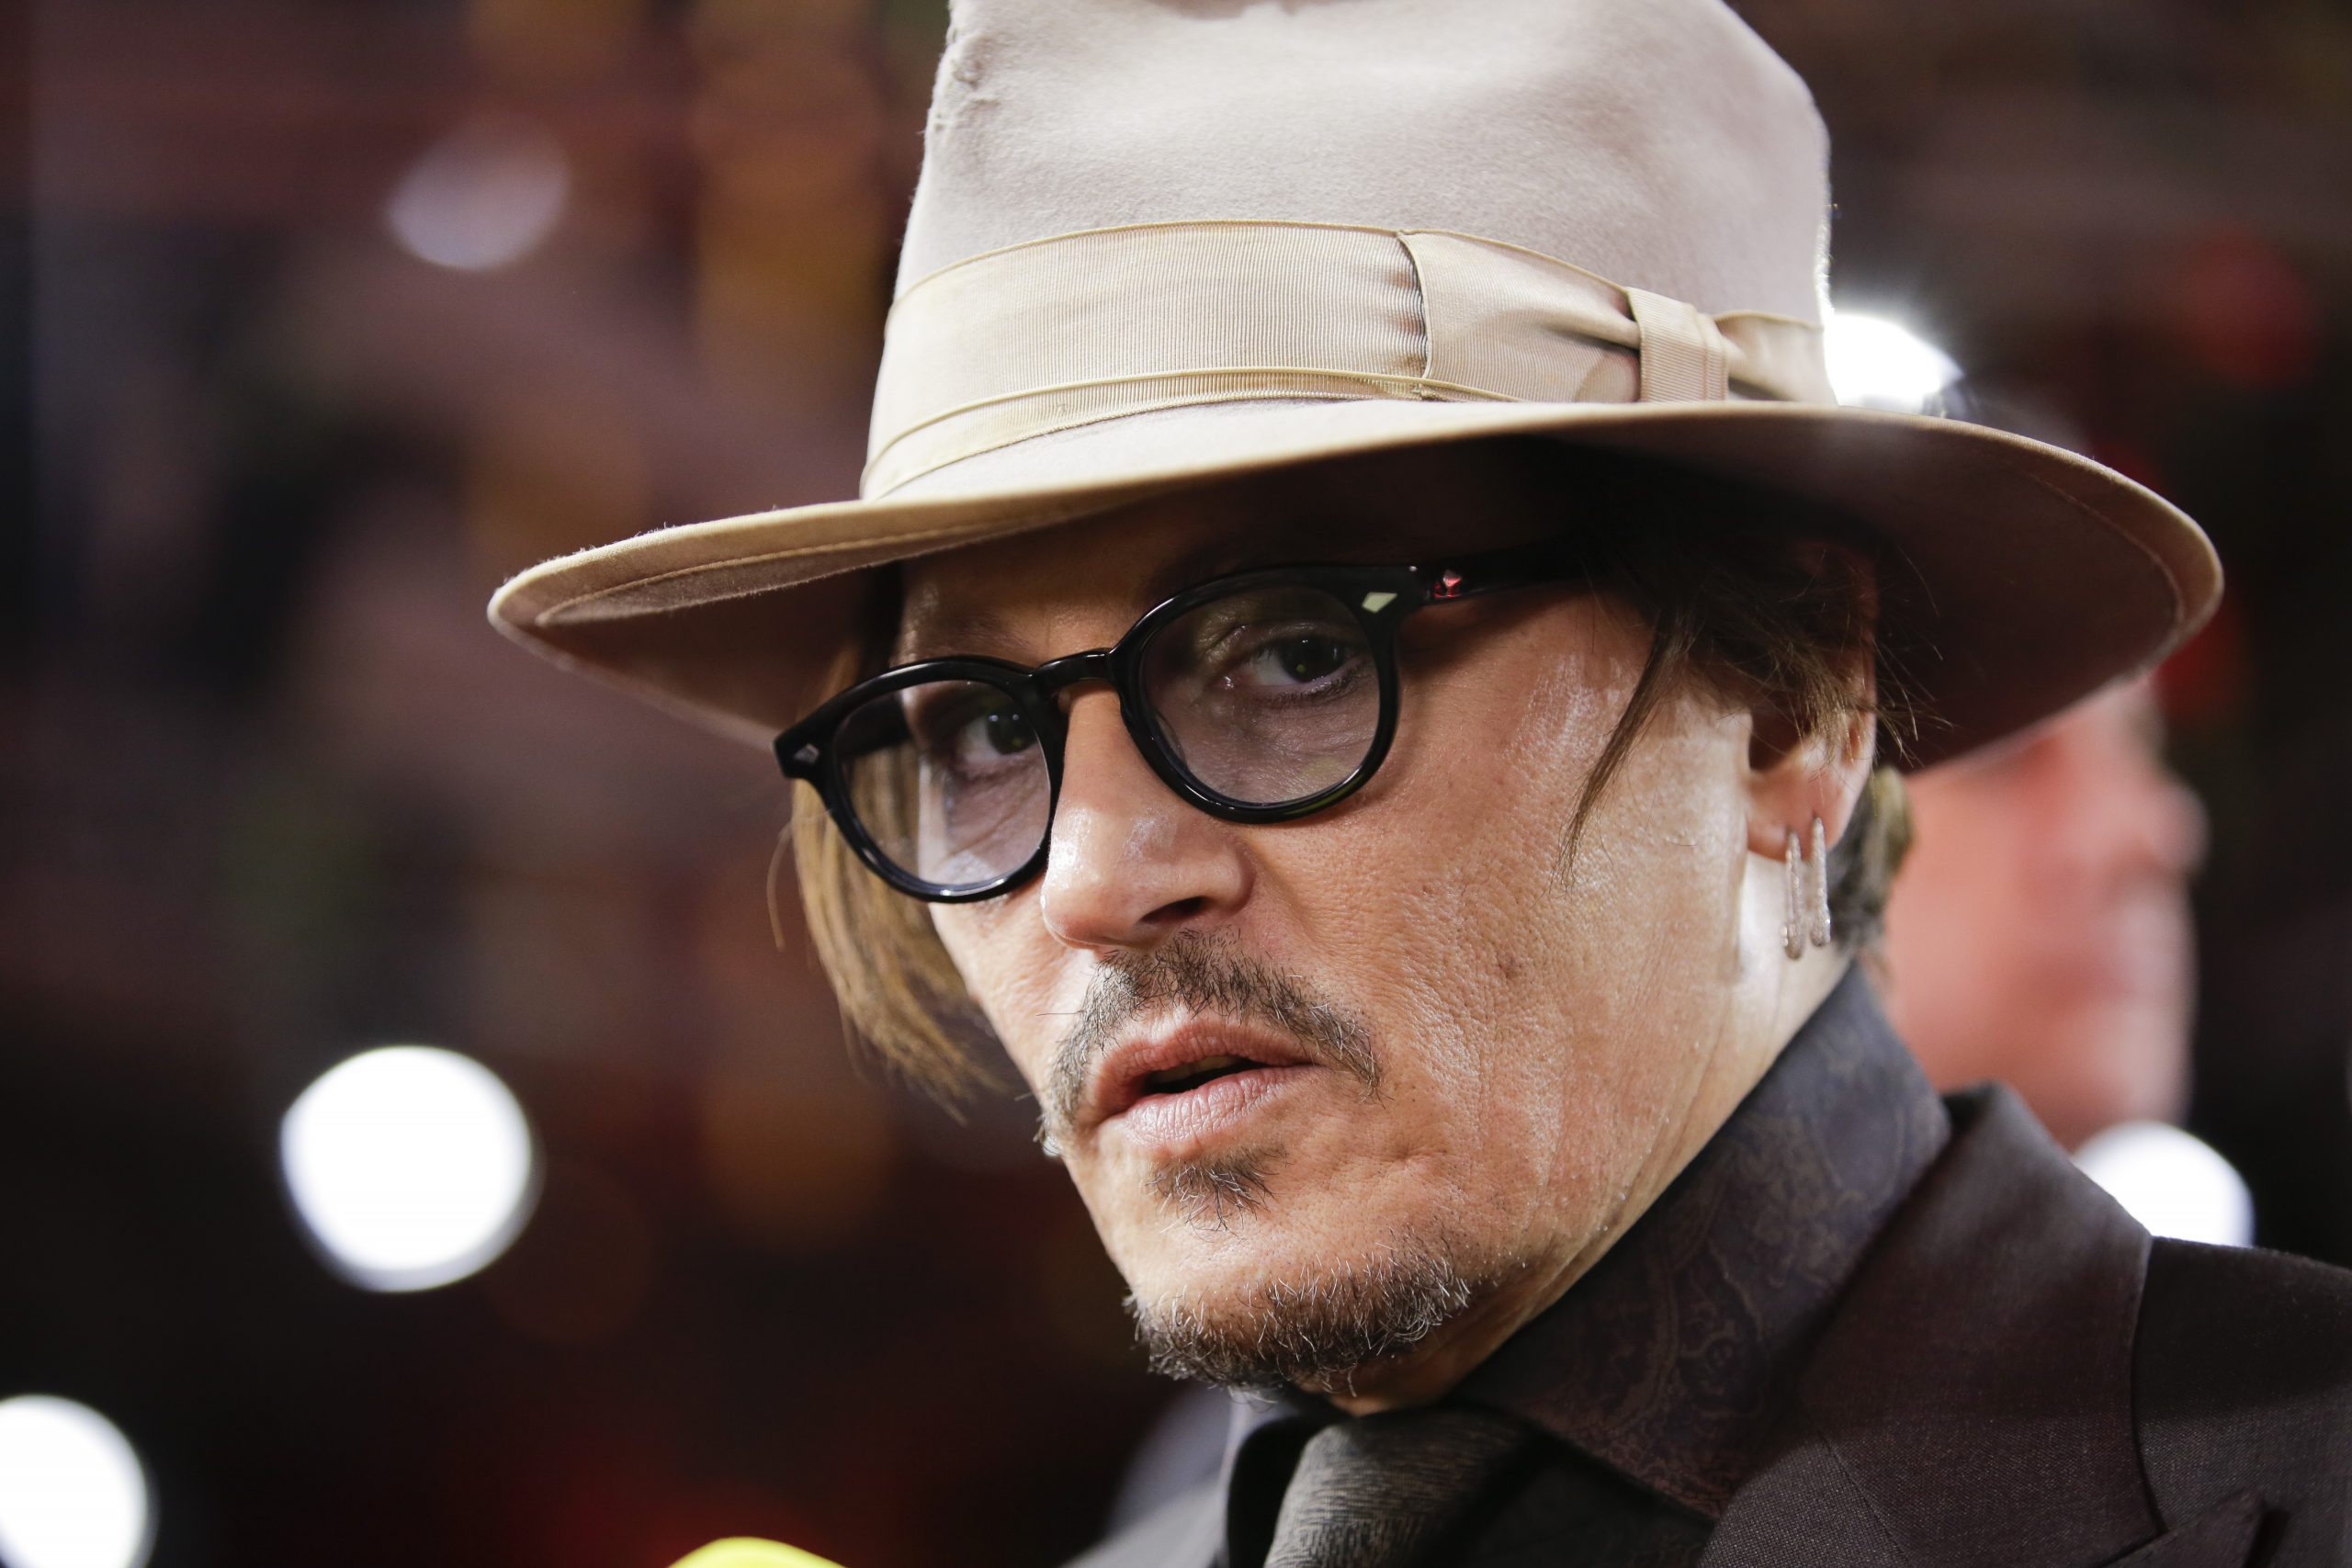 Johnny Depp Reportedly Asked For Drugs Days Before Amber Heard's Alleged Assault